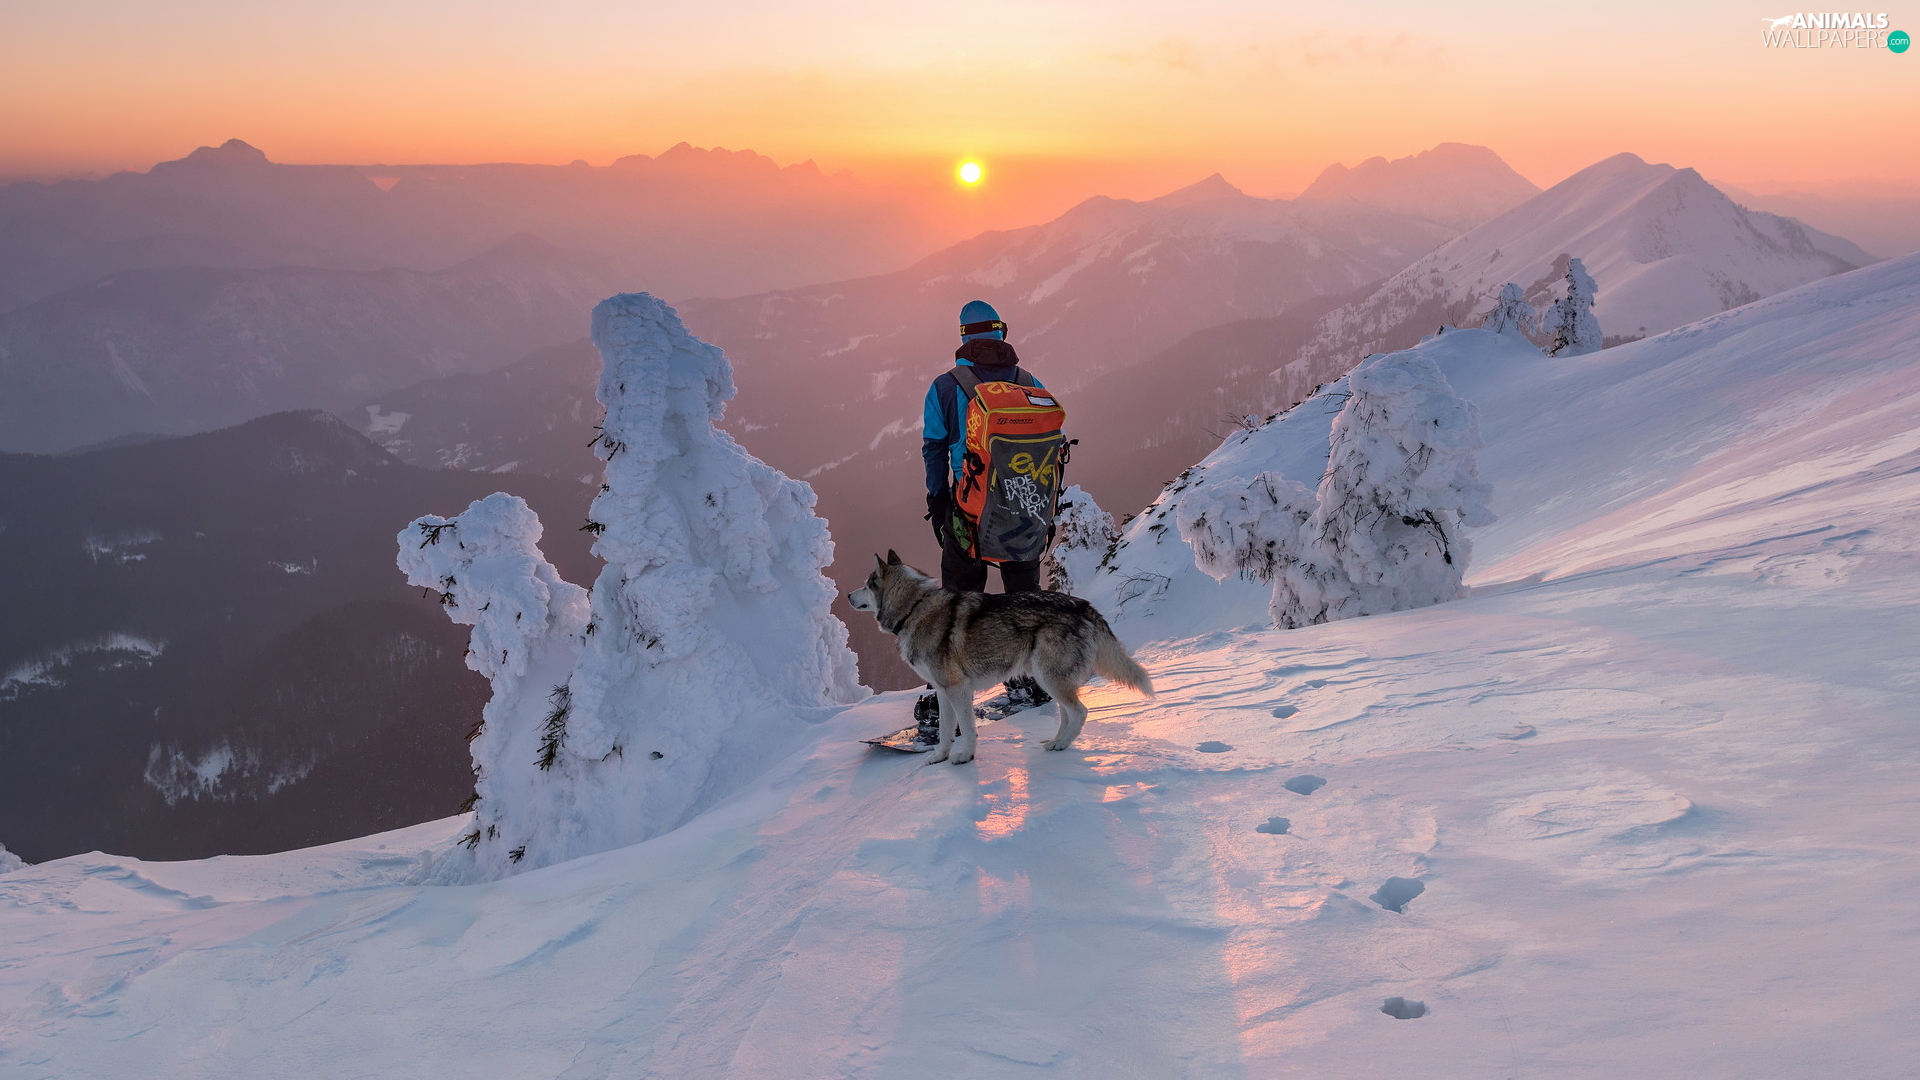 winter, Mountains, Snowy, trees, dog, Great Sunsets, a man, snowboarder, viewes